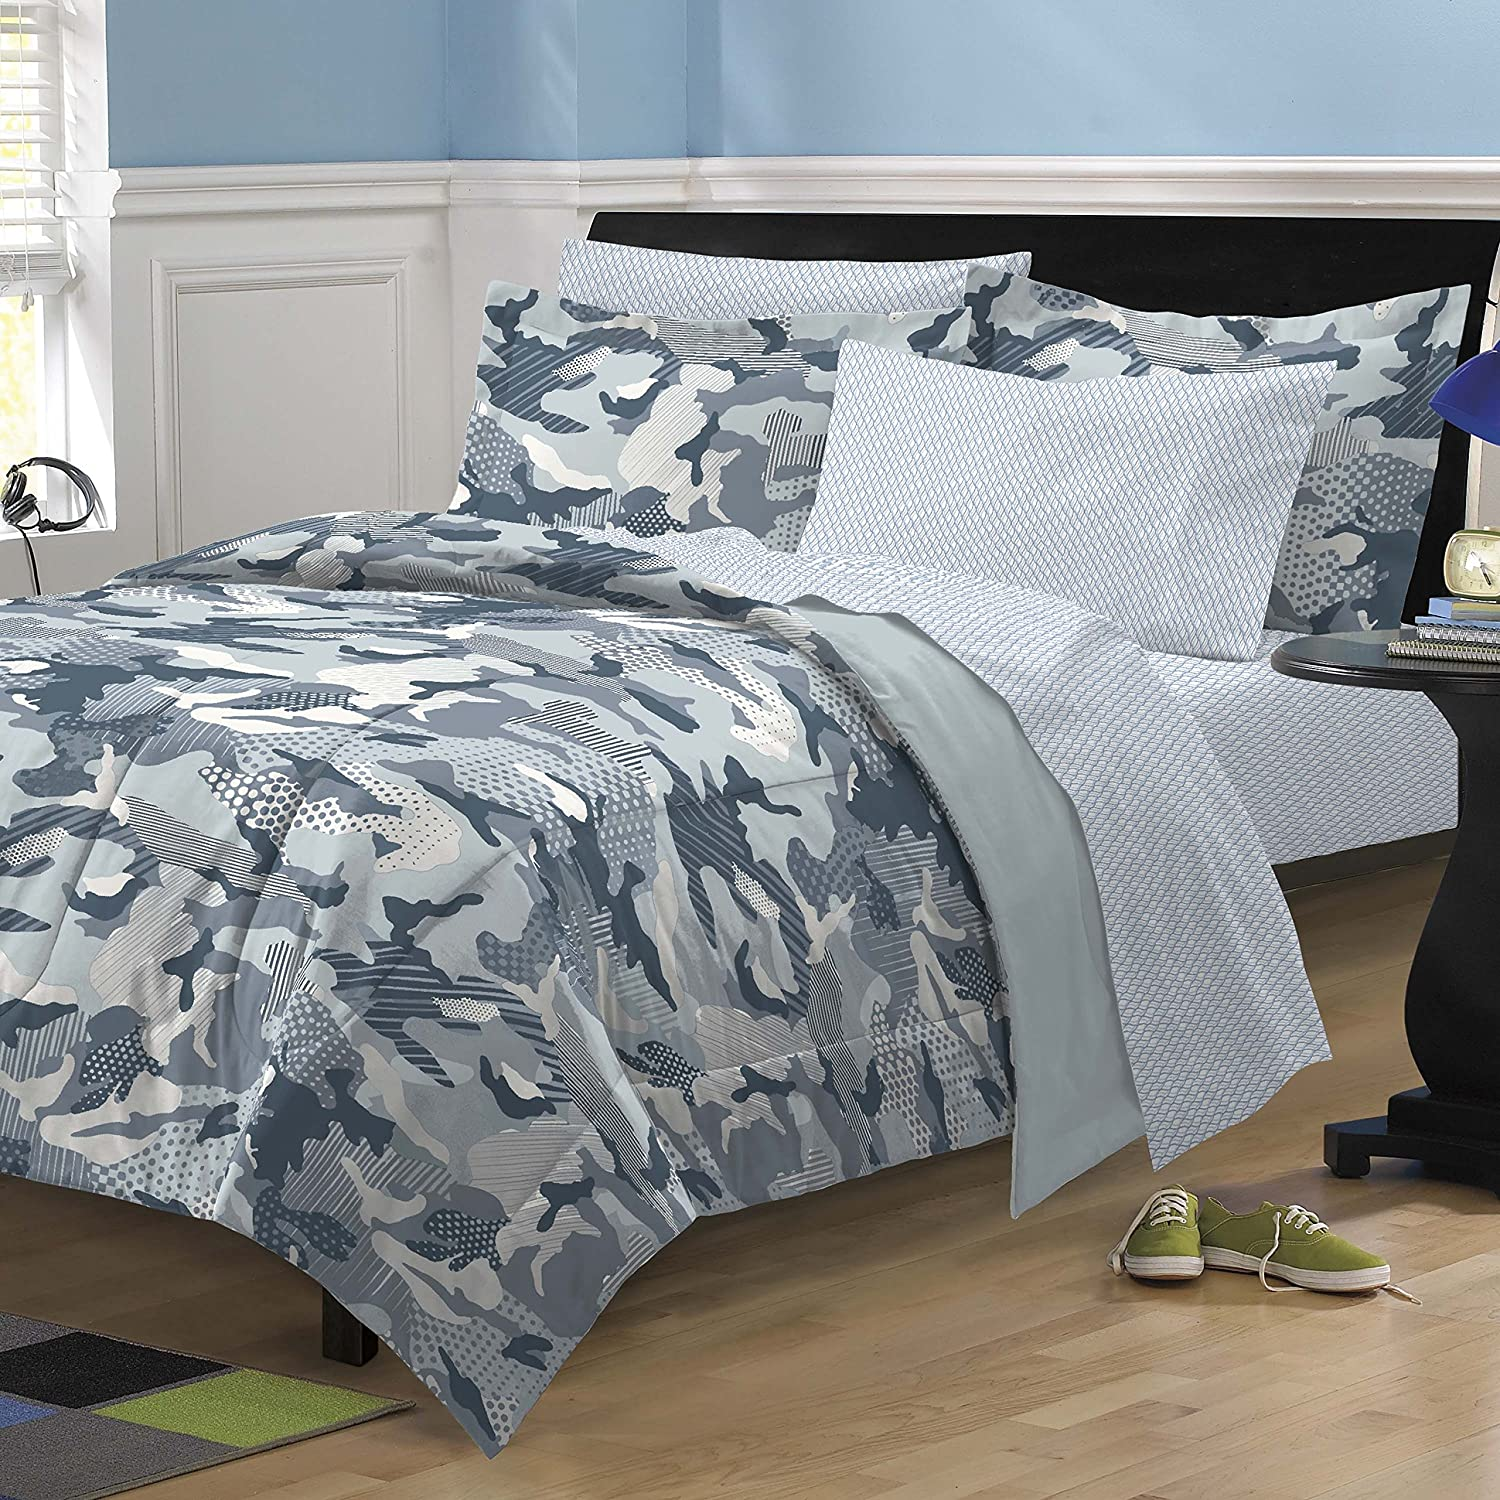 co comforters kids comforter twin asli boys sets aetherair sheet